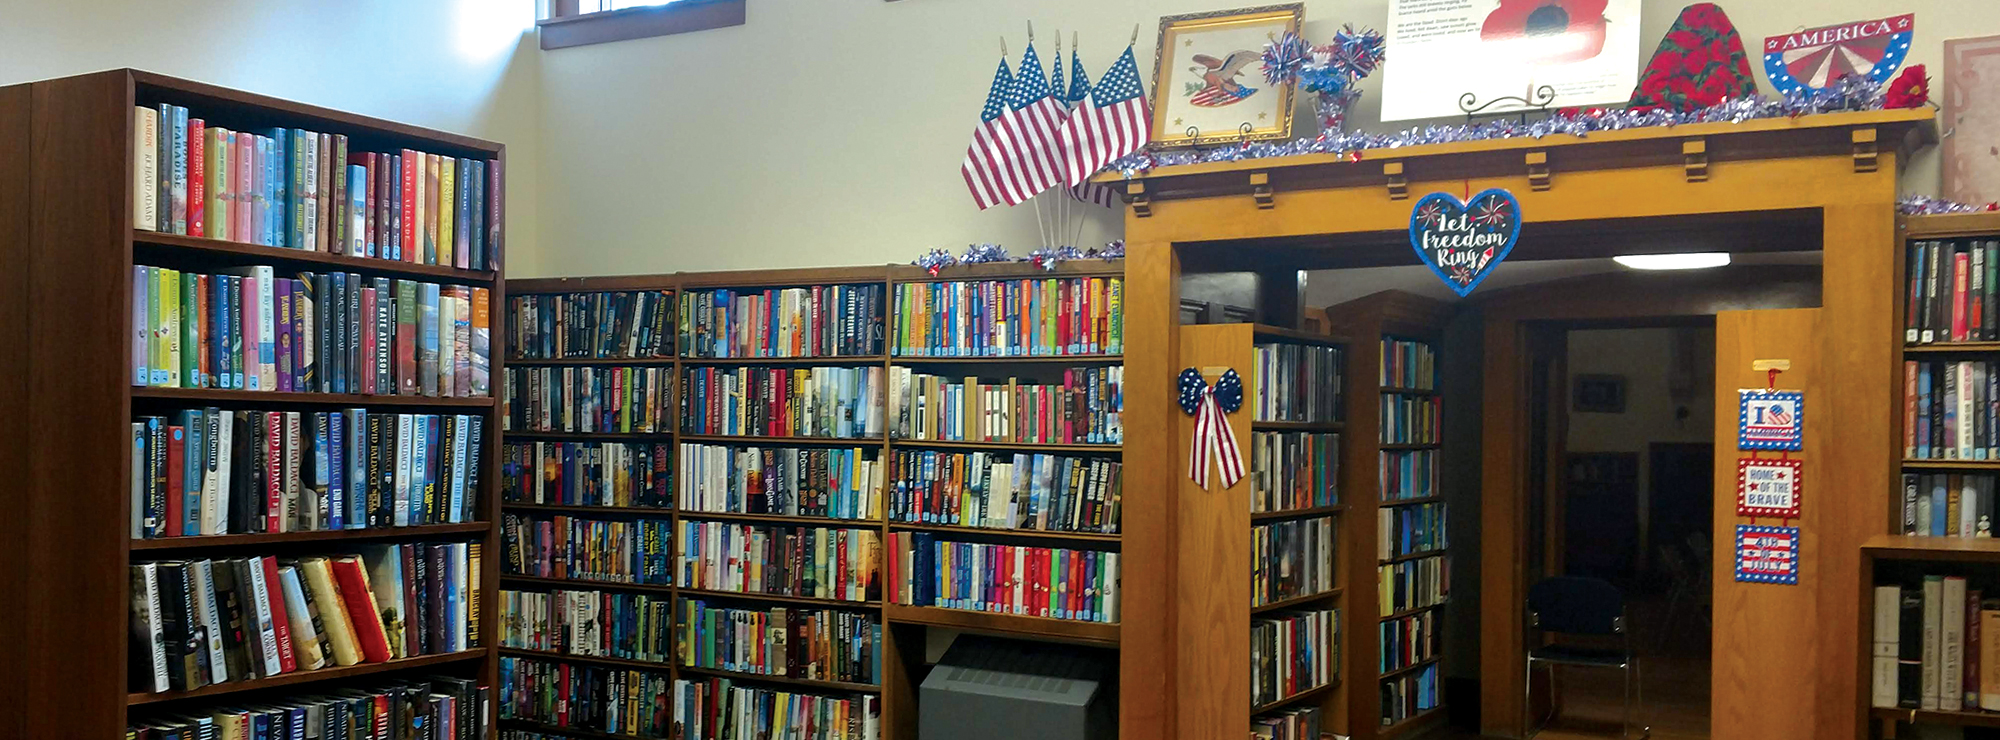 Photo shows library shelves full of books.